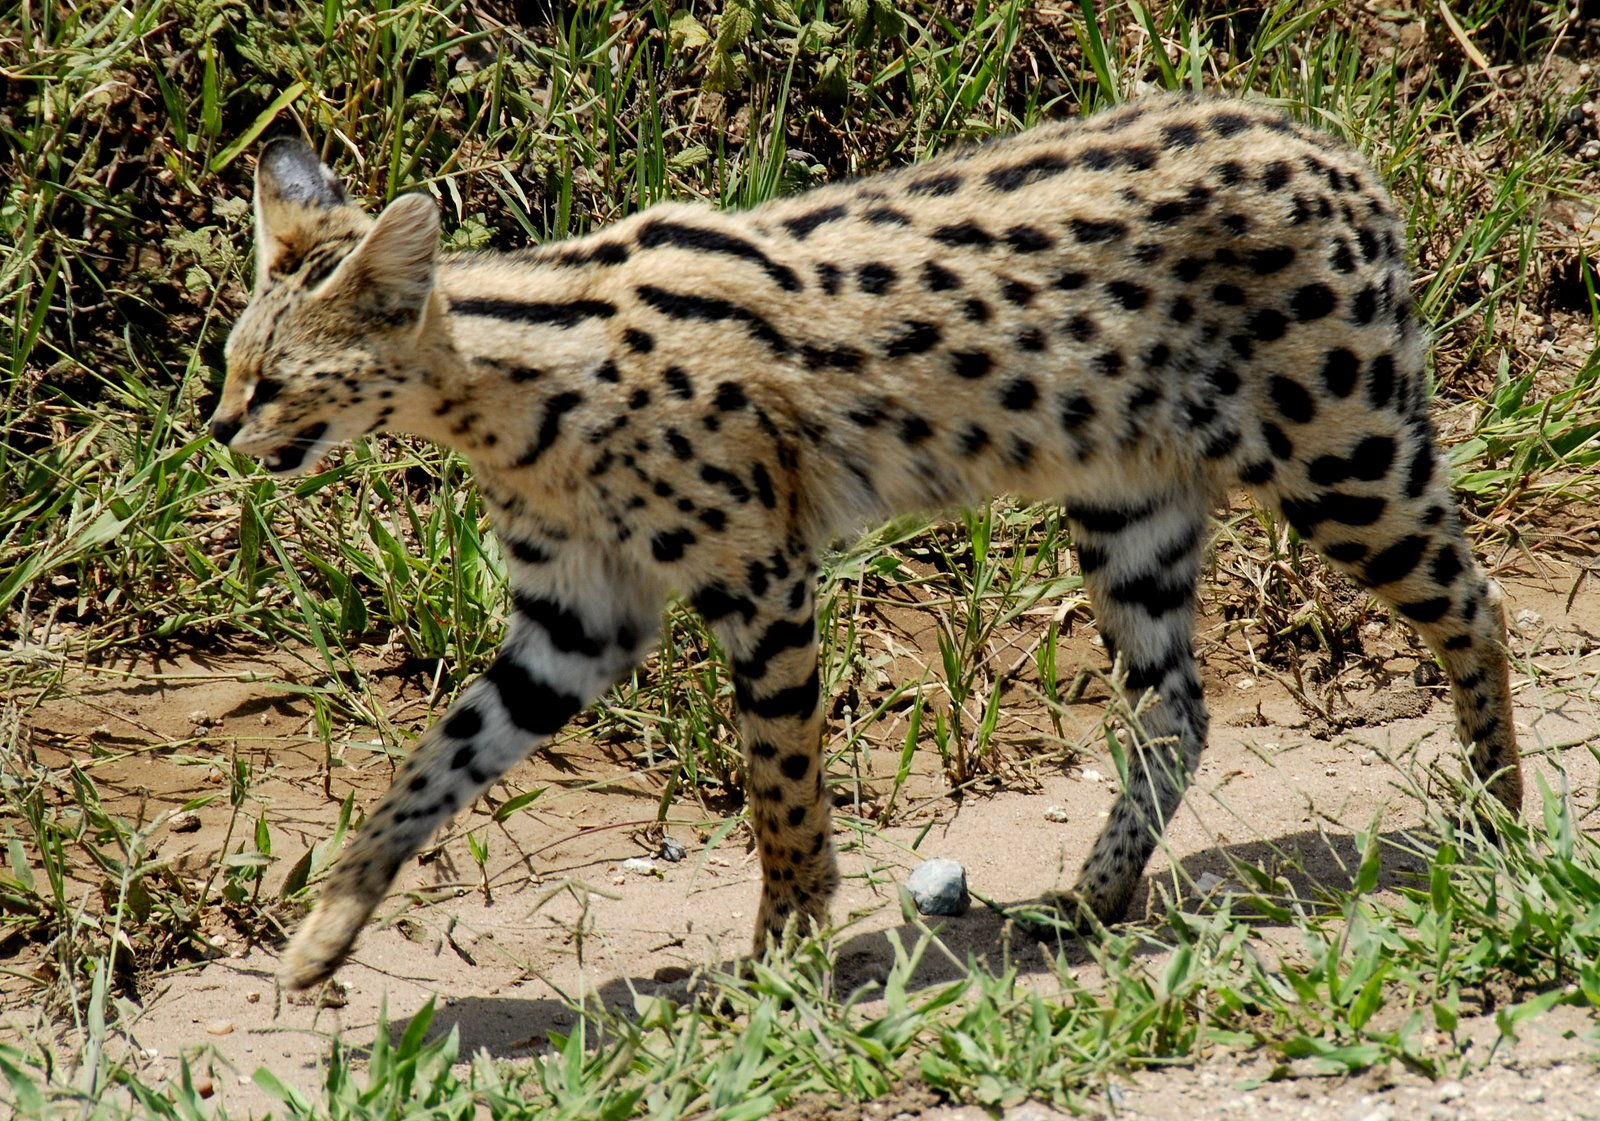 http://upload.wikimedia.org/wikipedia/commons/7/70/Leptailurus_serval_-Serengeti_National_Park%2C_Tanzania-8.jpg